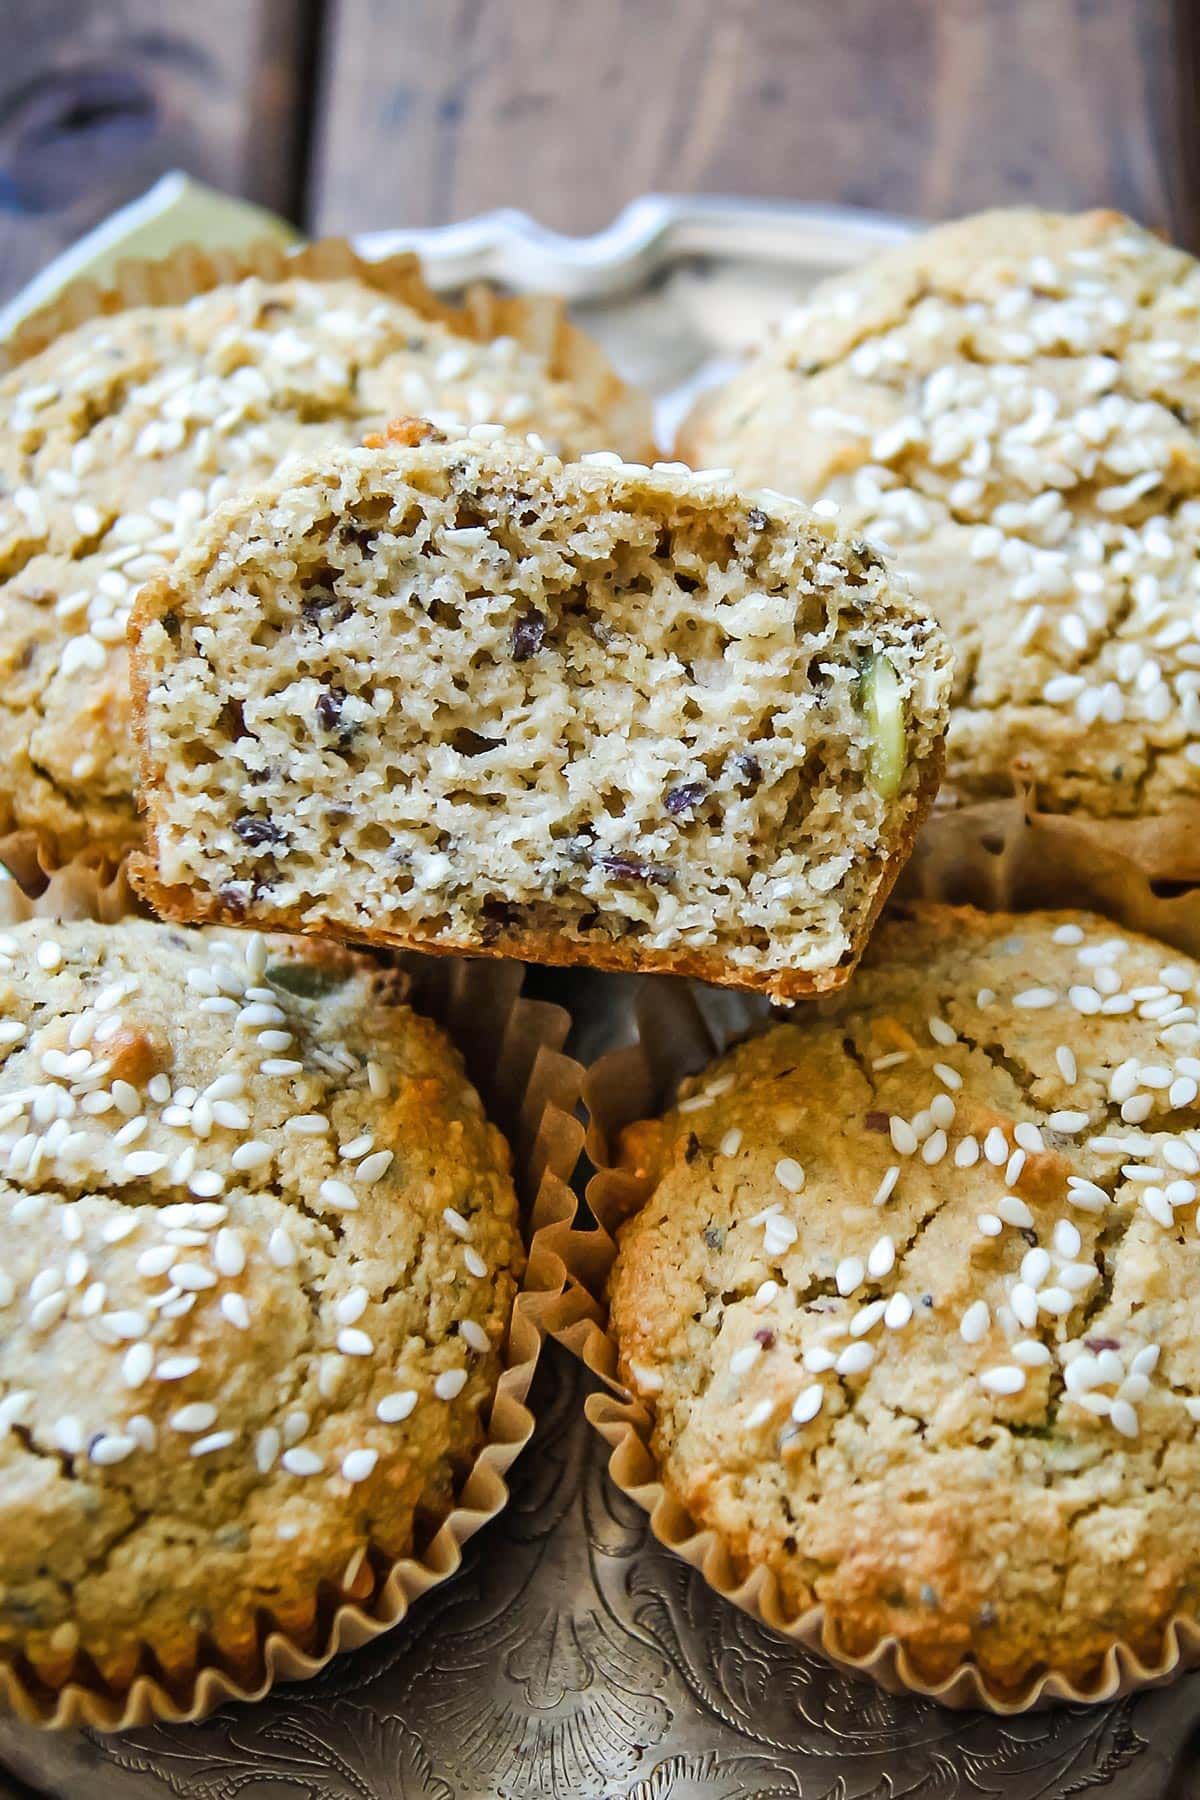 Gluten free tahini muffin half exposing airy texture with seeds for contrast on a stack of whole muffins